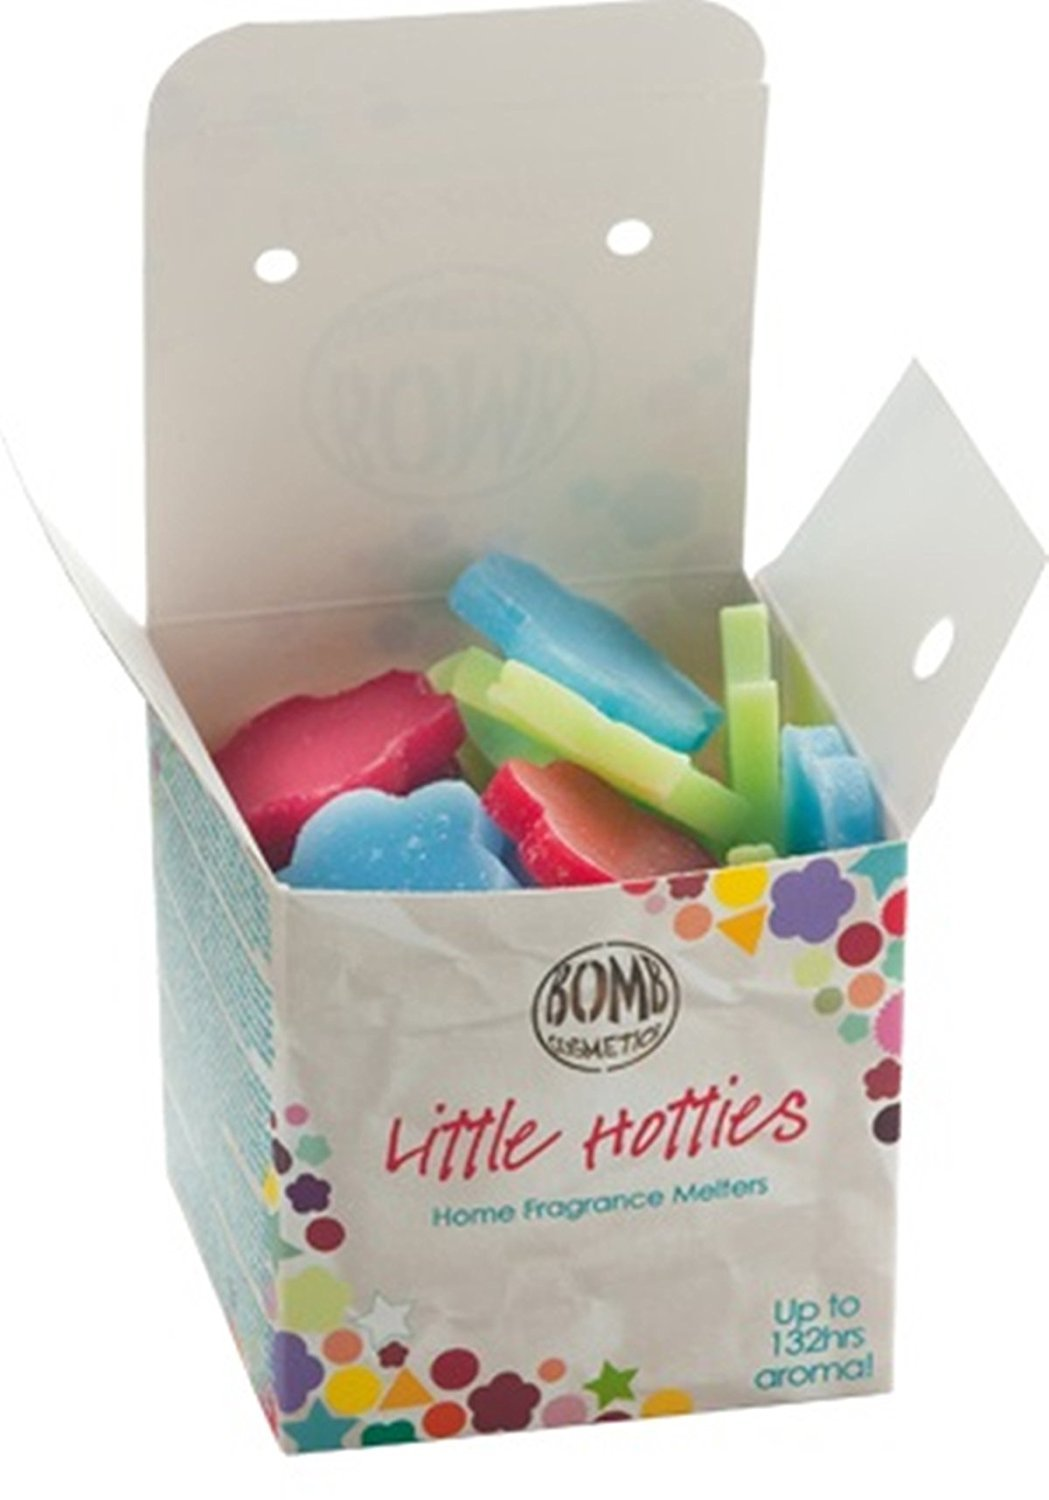 Little Hotties - Fragrant Wax Melts - Bomb Cosmetics